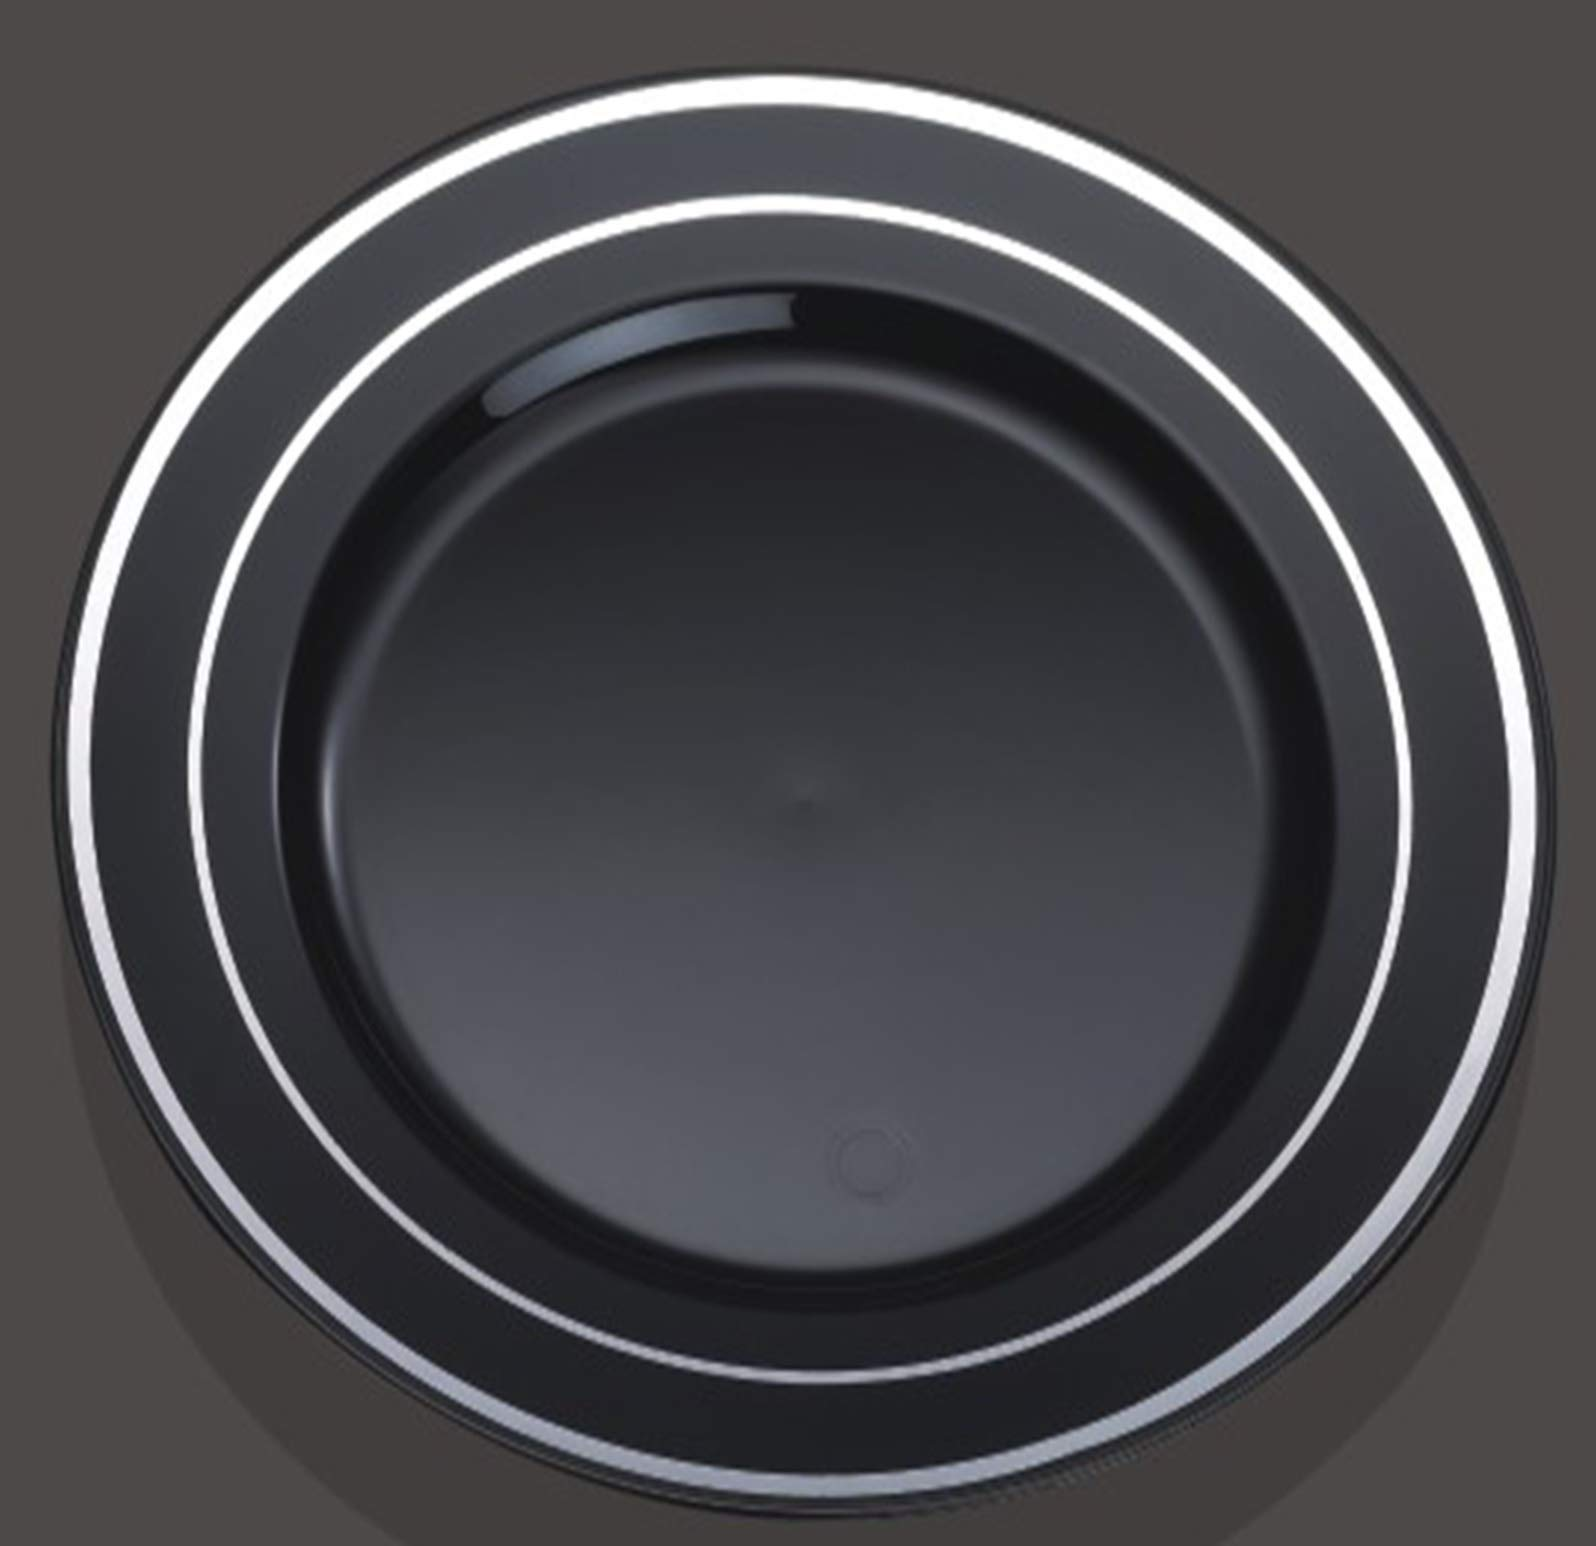 100 Piece Plastic Plates Black & Silver | 50 Guest | 50 Dinner Plates, 50 Dessert Plates by You're Invited (Image #1)